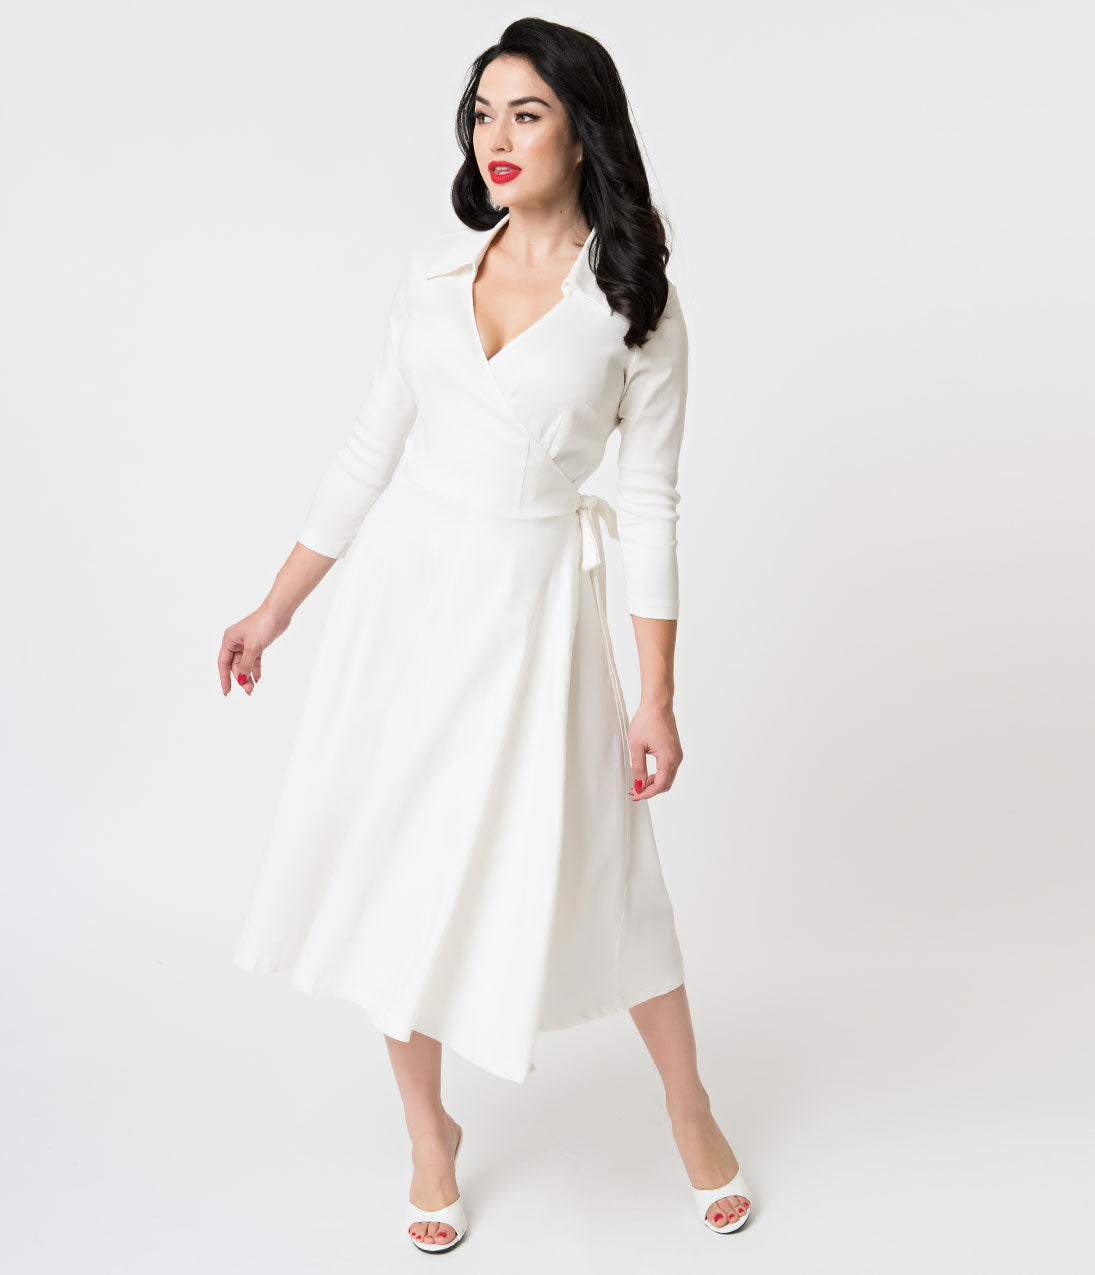 50s Wedding Dress, 1950s Style Wedding Dresses, Rockabilly Weddings Unique Vintage 1950S Style White Stretch Sleeved Anna Wrap Dress $98.00 AT vintagedancer.com